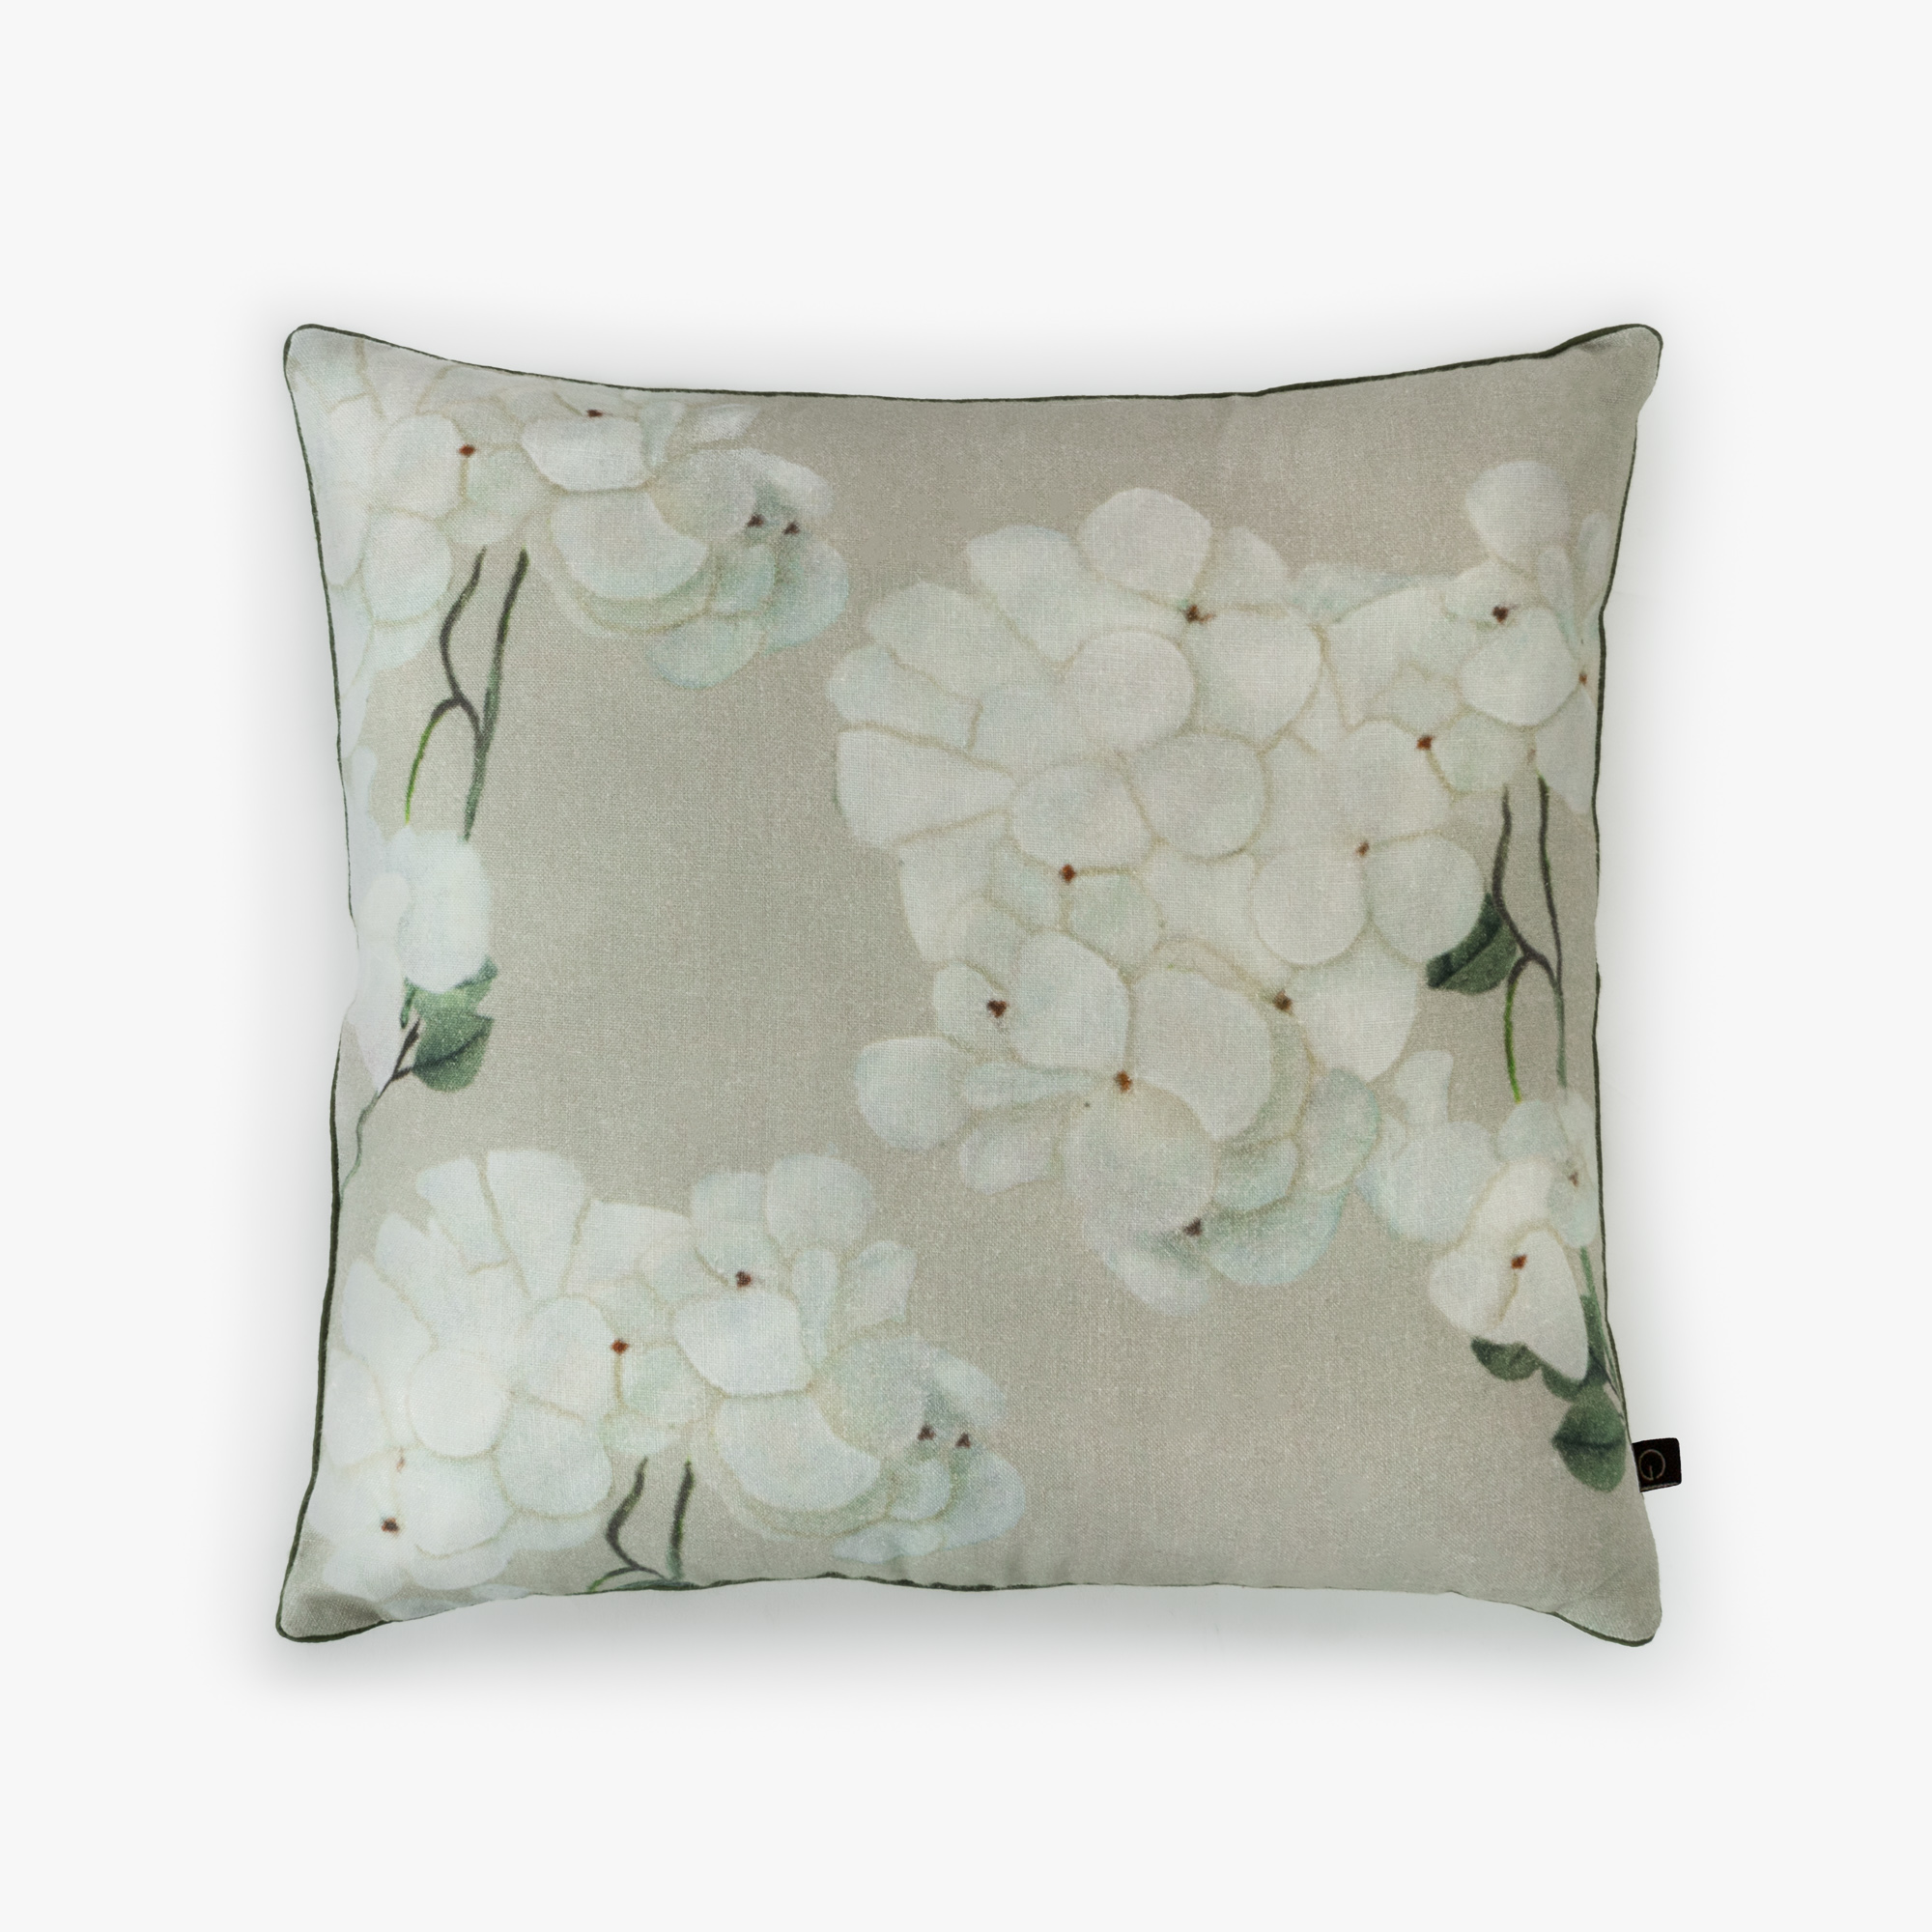 PEARL HYDRANGEAS CUSHION COVER